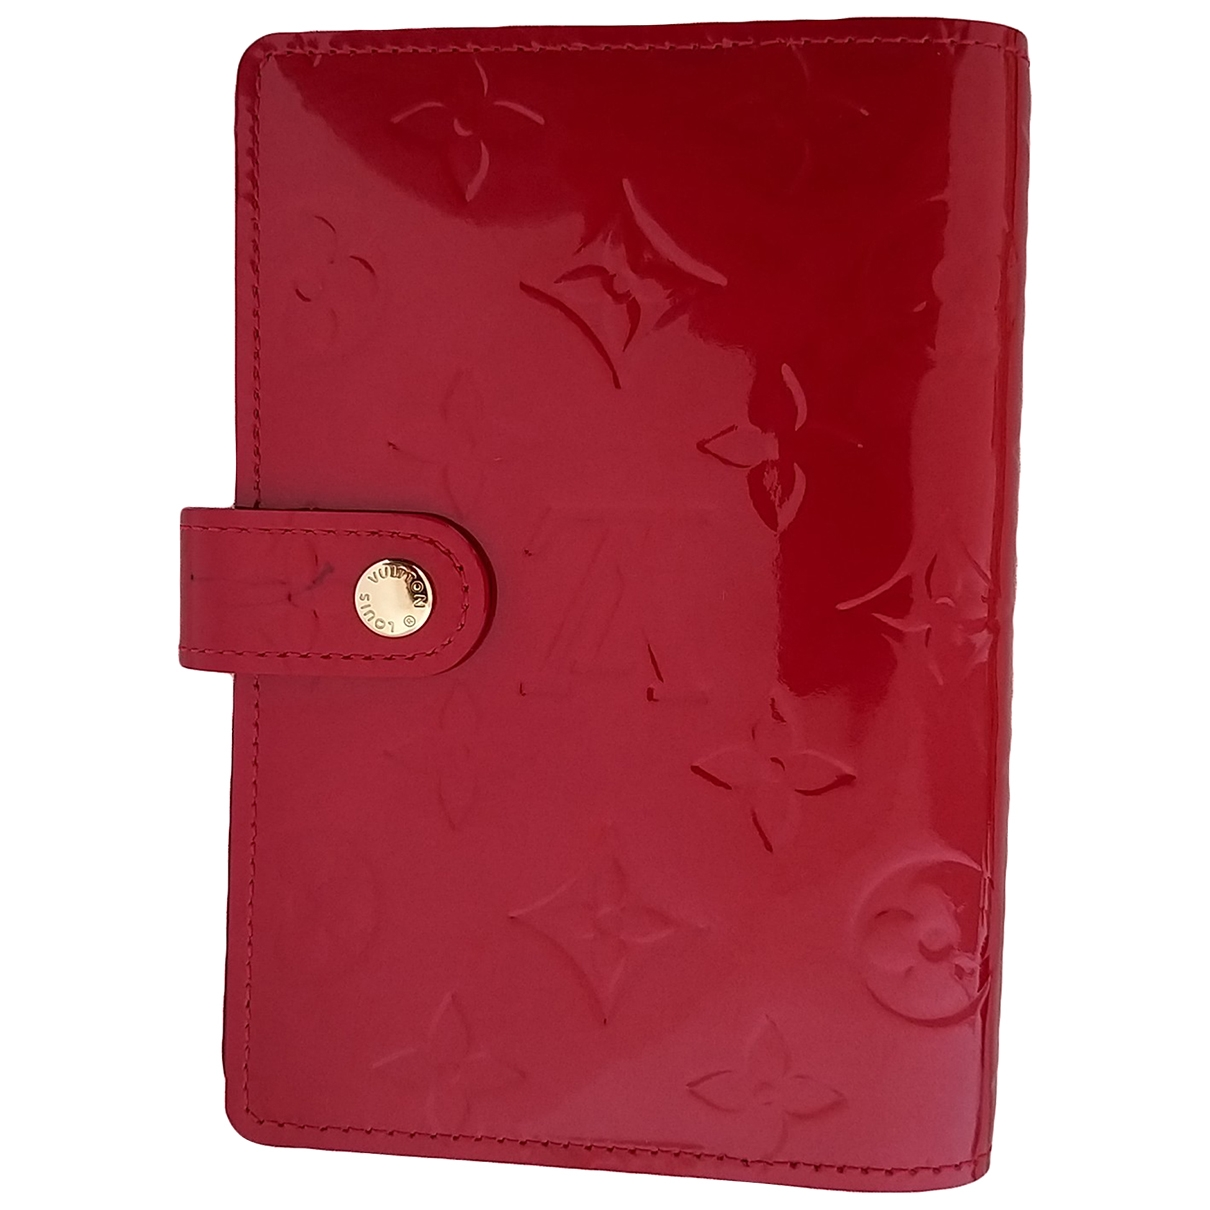 Louis Vuitton Couverture d'agenda PM Red Leather Home decor for Life & Living \N